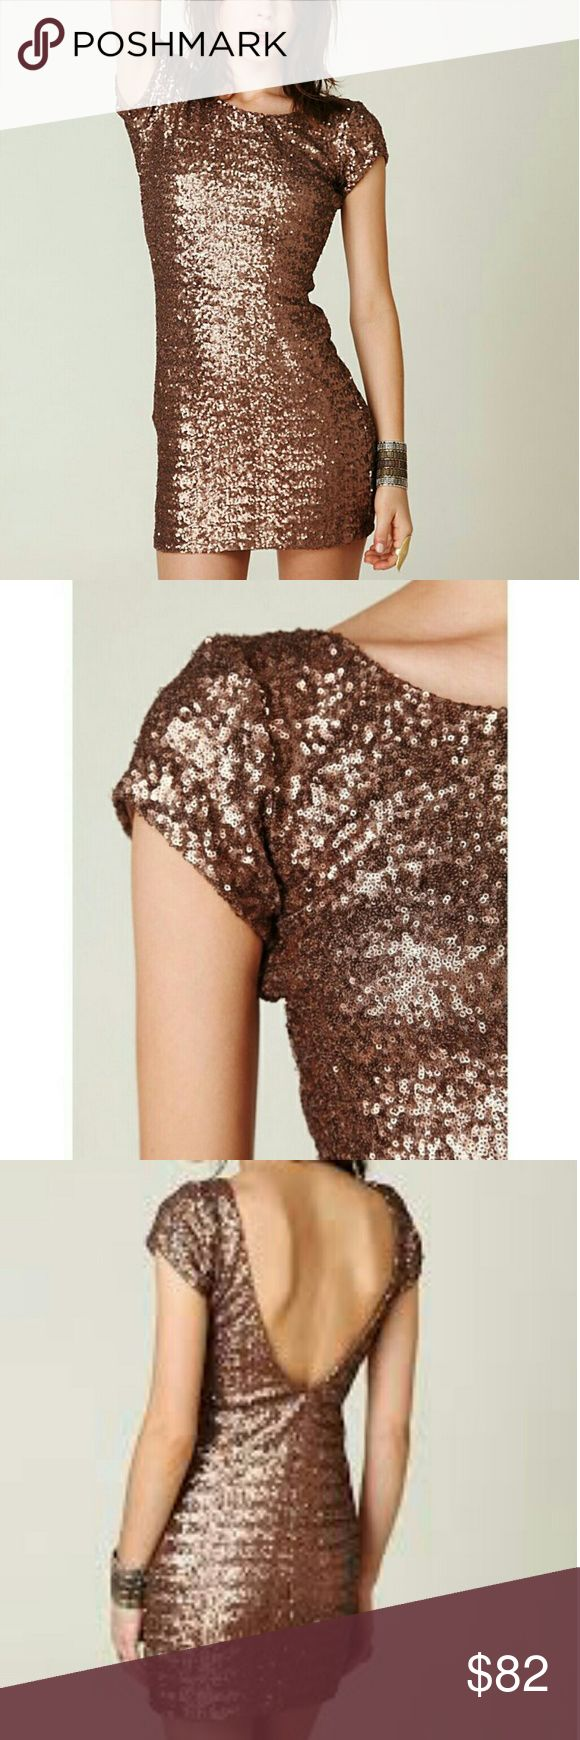 Free People Fever Sequin Dress Almost new, worn once and in pristine condition! Size Small. Short sleeve copper/brown sequin dress with open back, perfect for upcoming holiday parties! Free People Dresses Mini